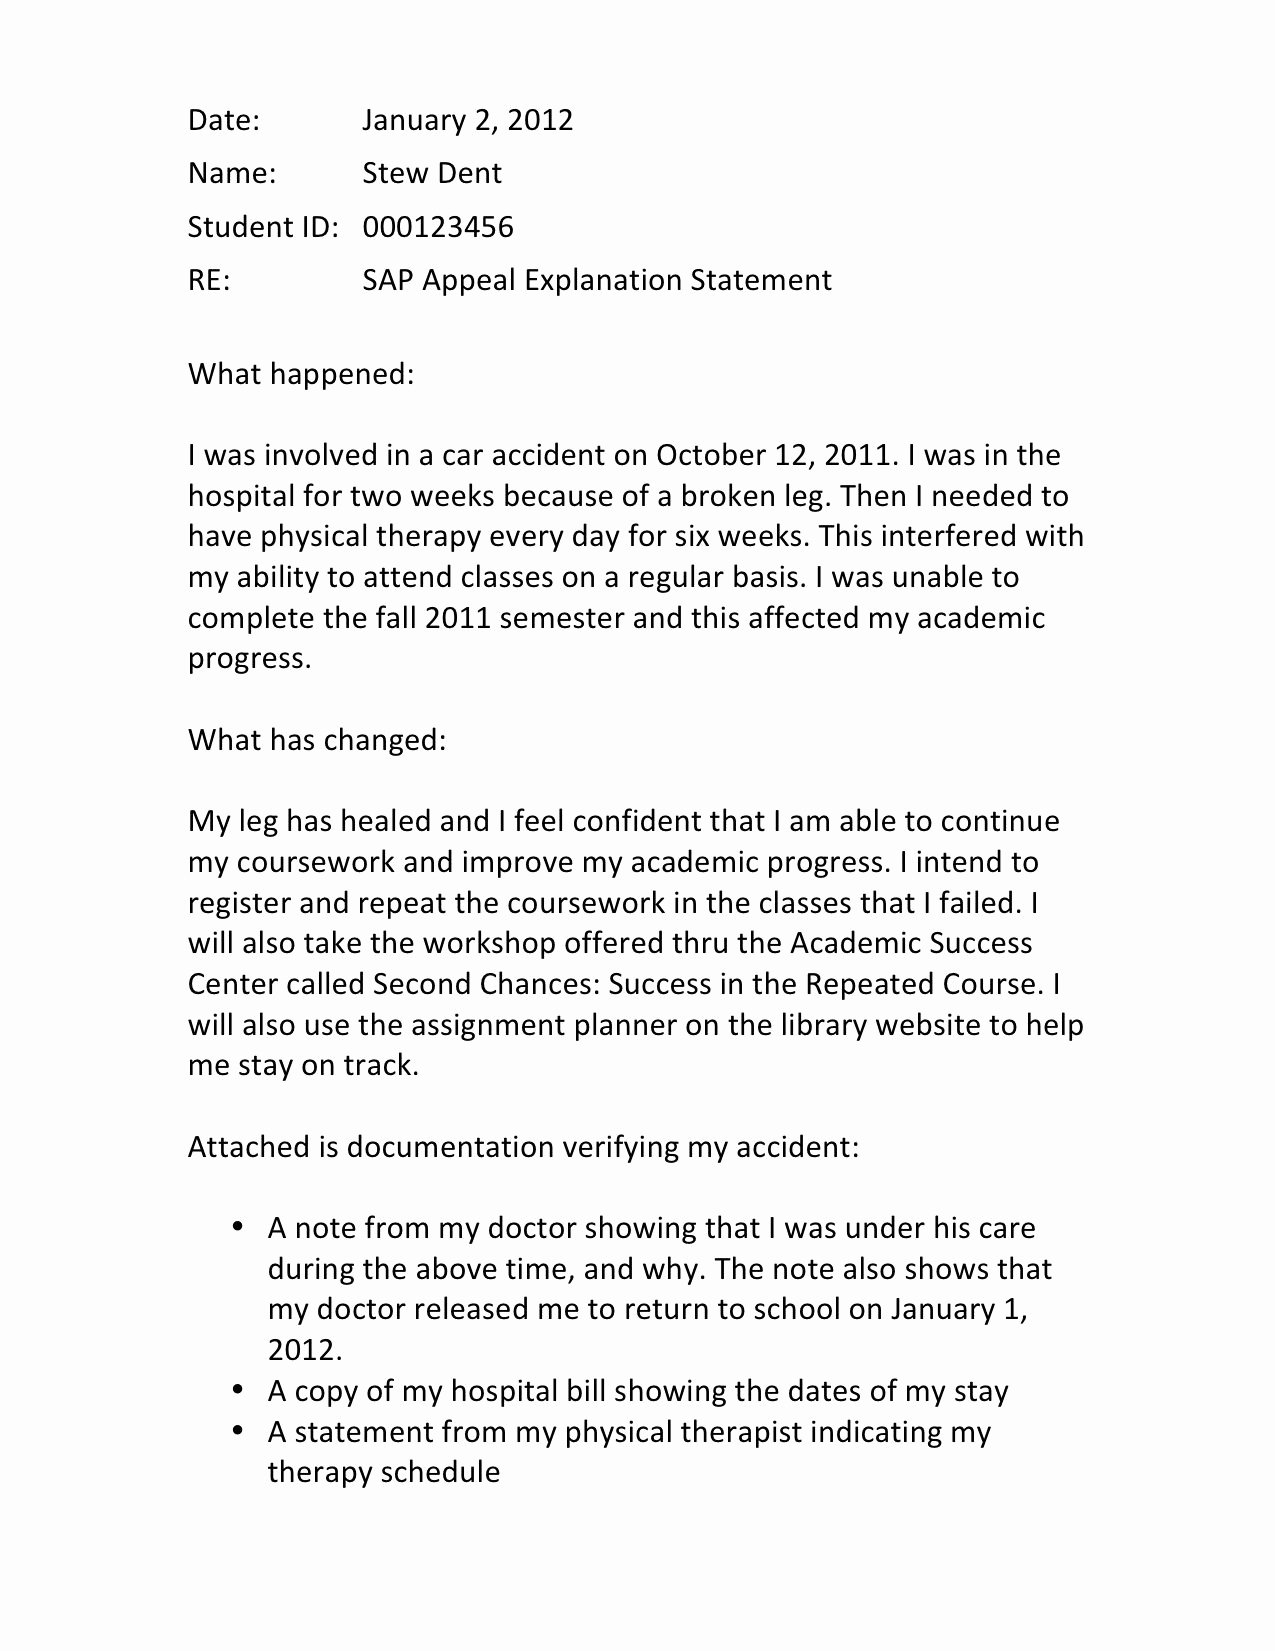 Sap Appeal Letter Beautiful Finaid the Financial Aid Information Page Example Of